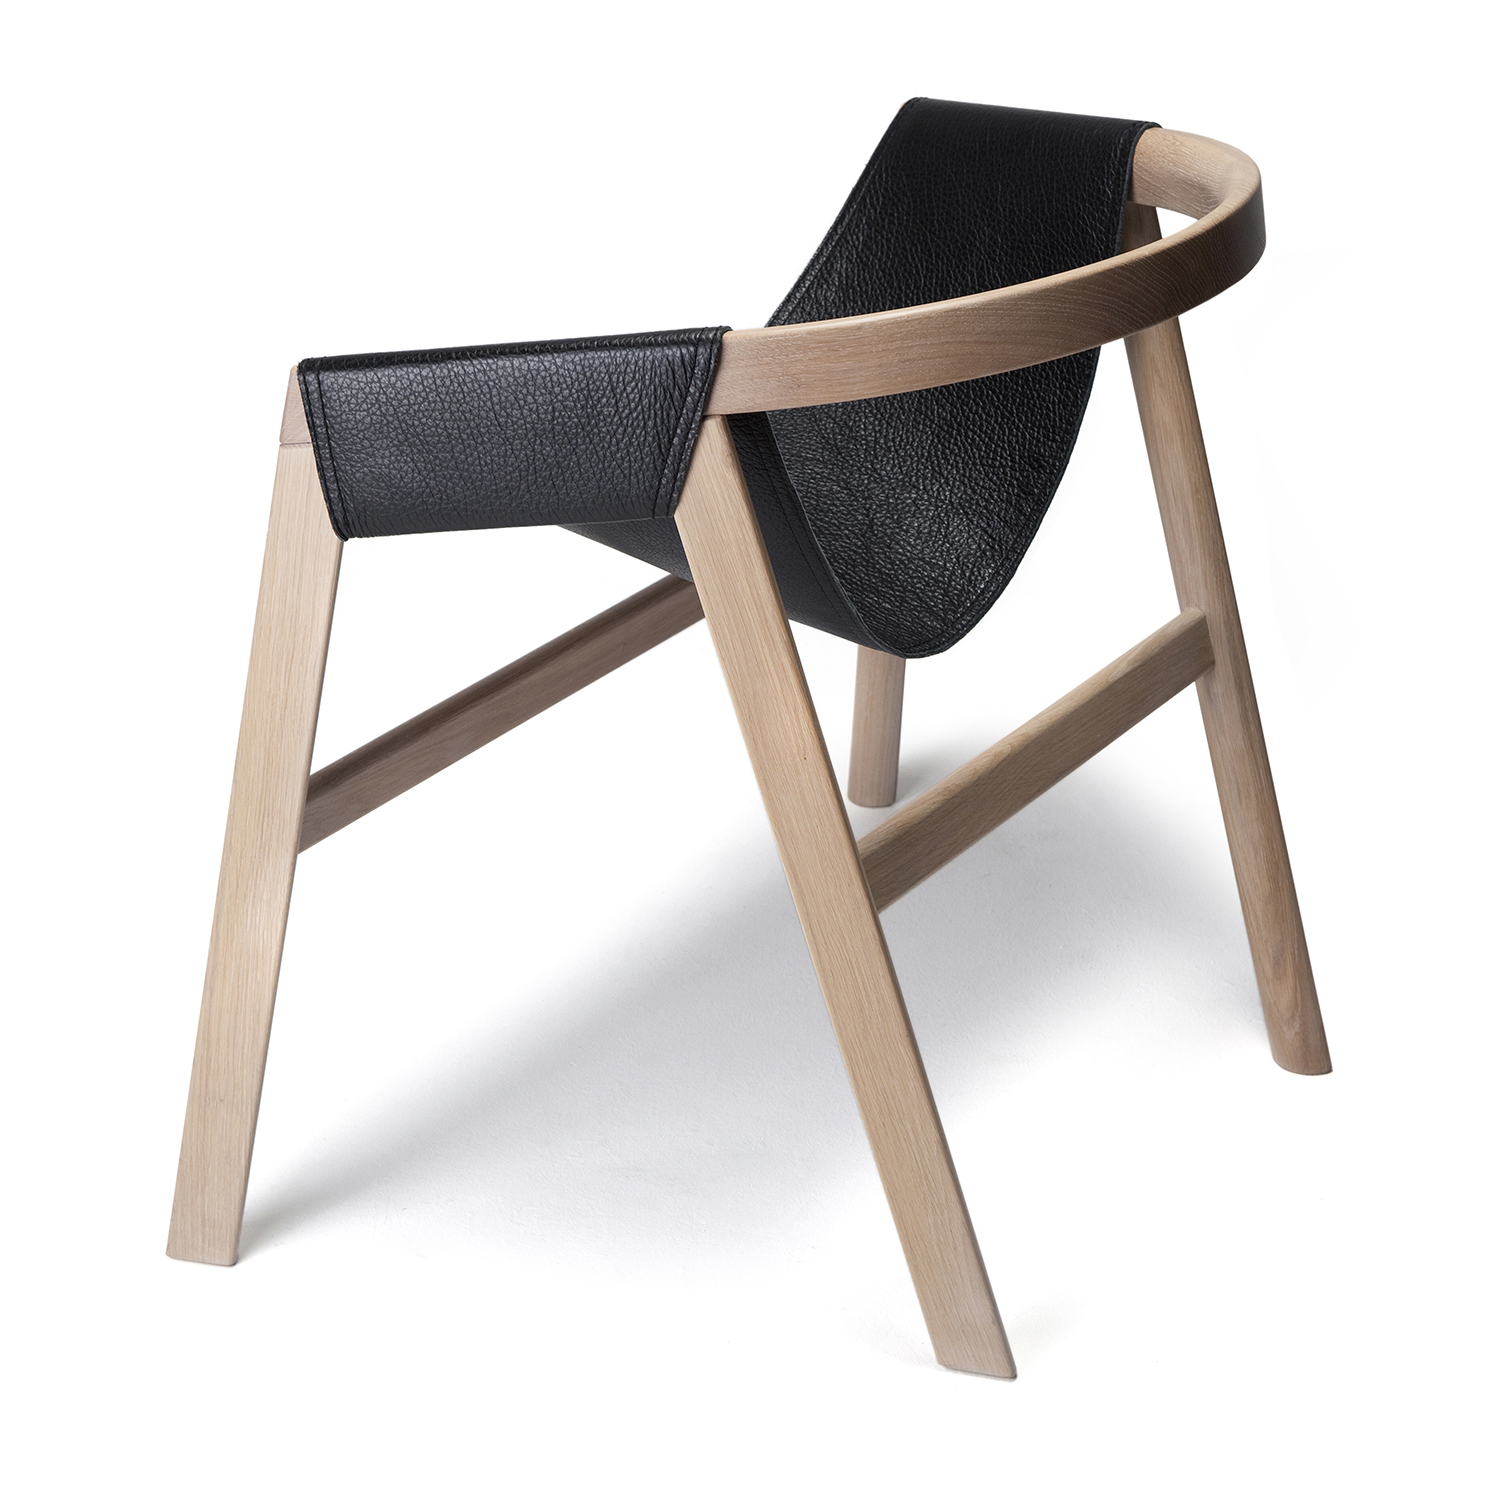 Chairblog Chairs Chair Design and Chair Designers